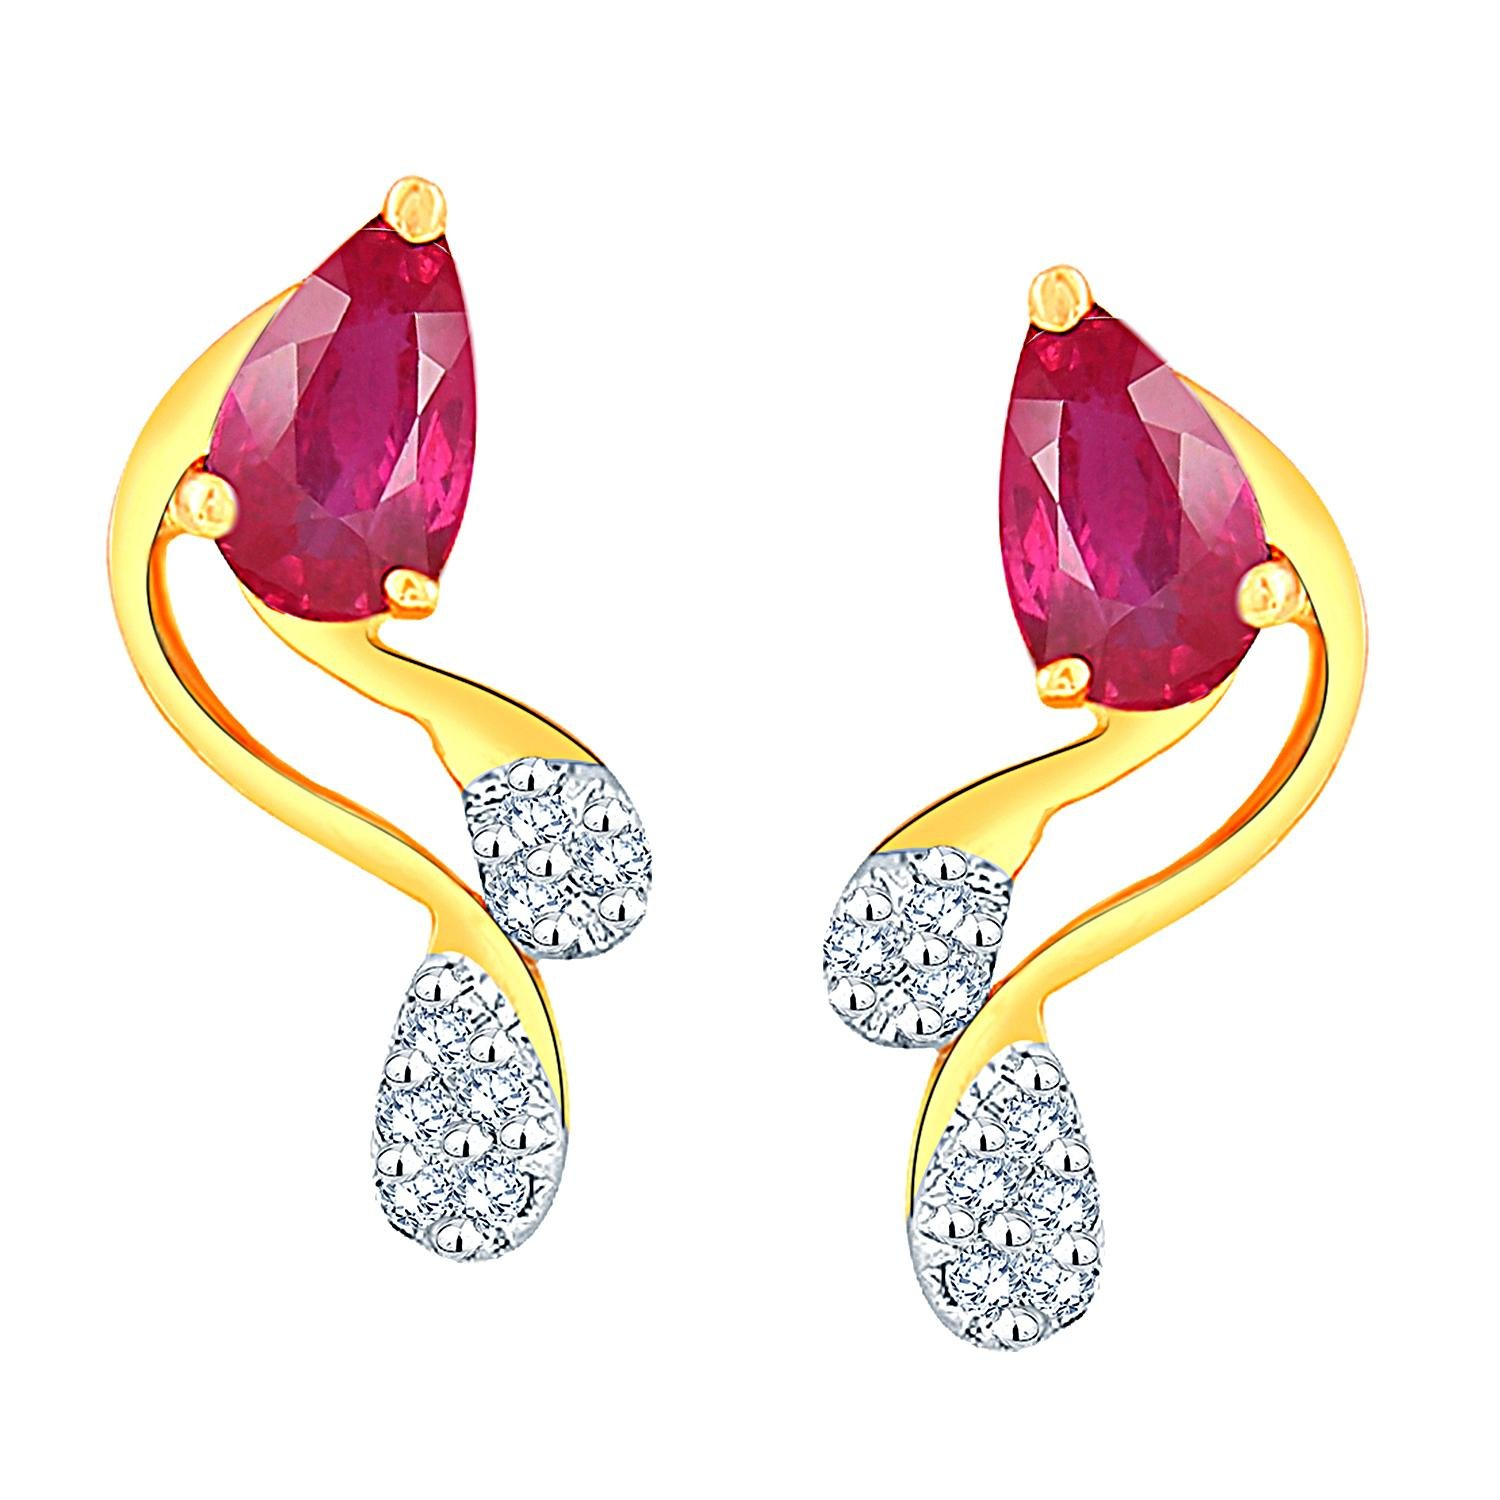 40% Off On Asmi Jewelry By Amazon | Gili 18k Yellow Gold and Diamond Stud Earrings @ Rs.10,680